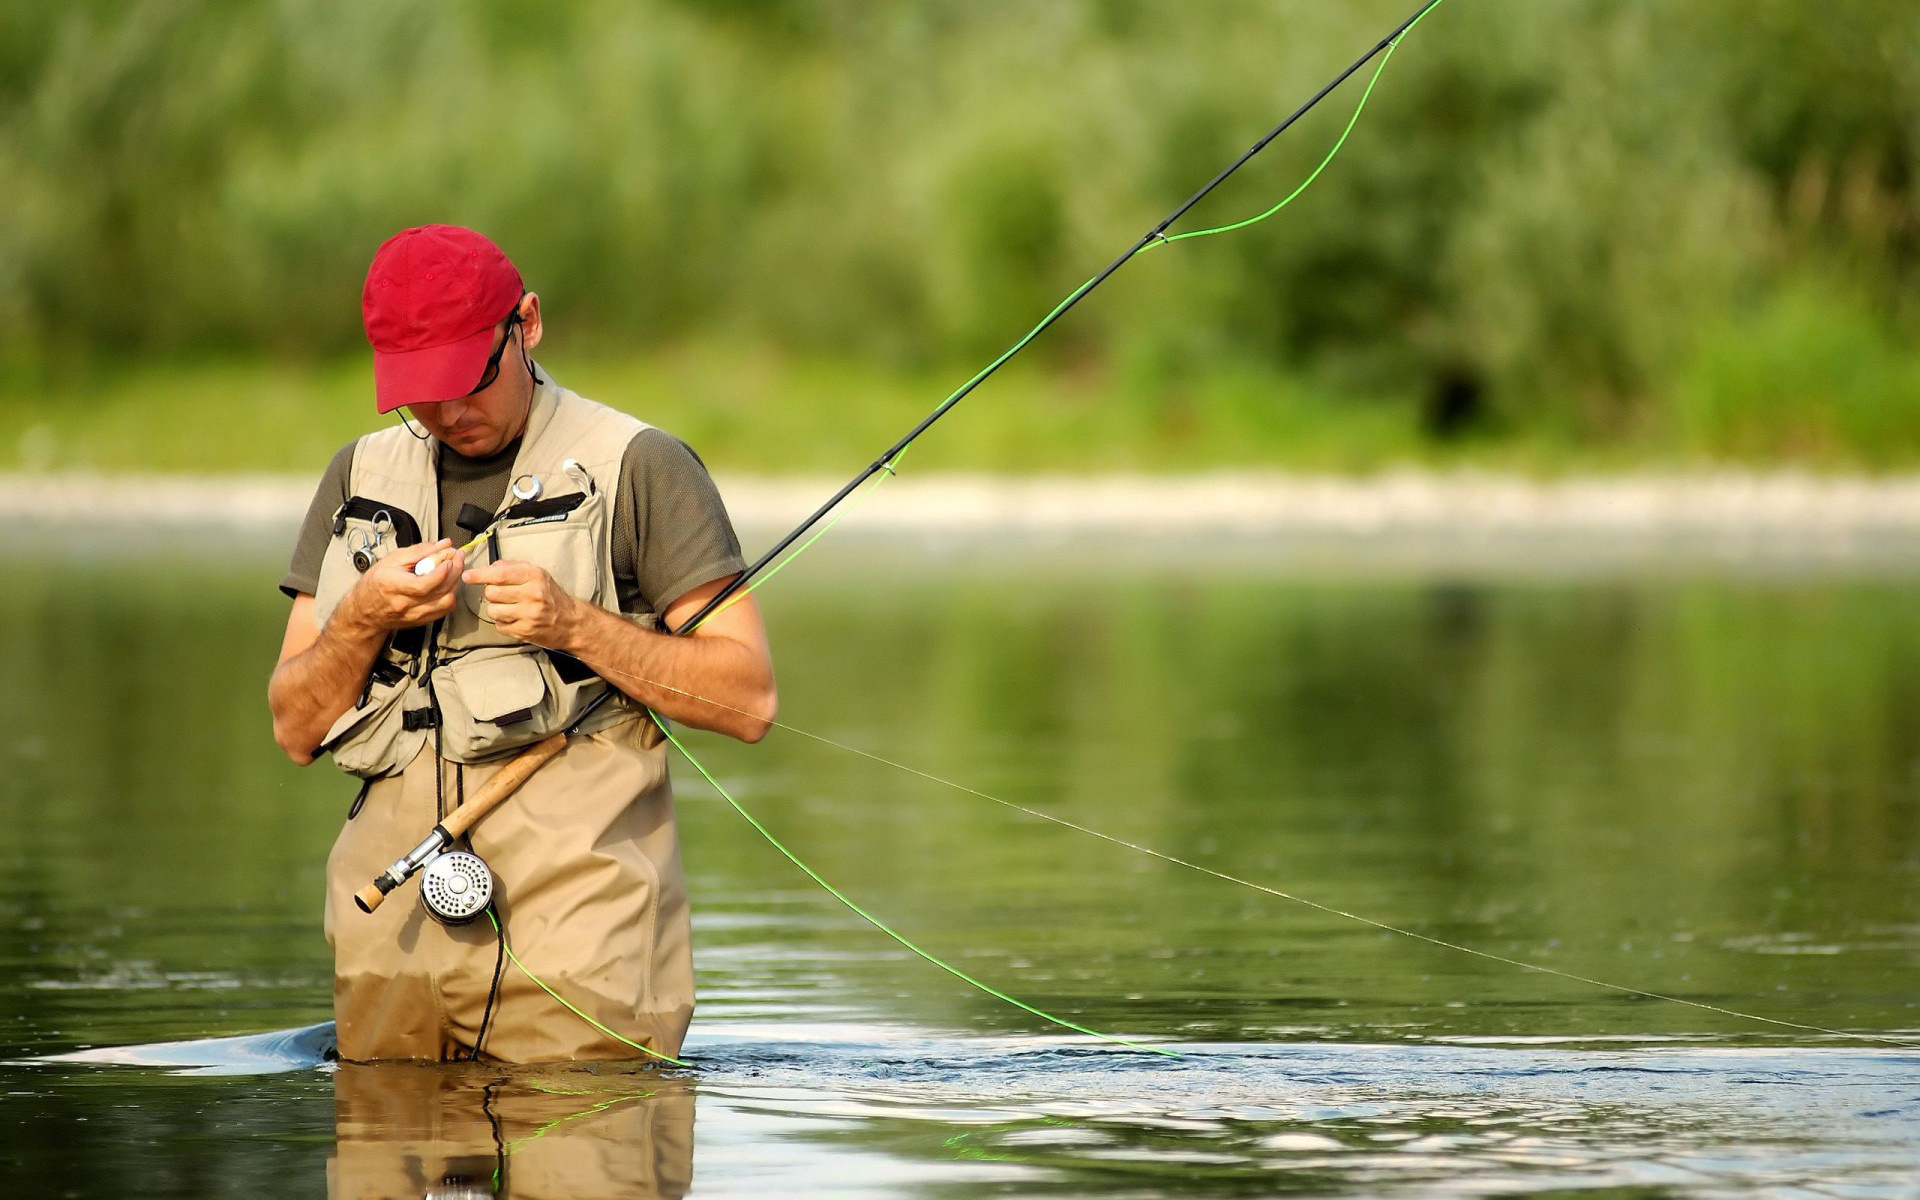 fisherman fly fishing wallpapers55com   Best Wallpapers for PCs 1920x1200